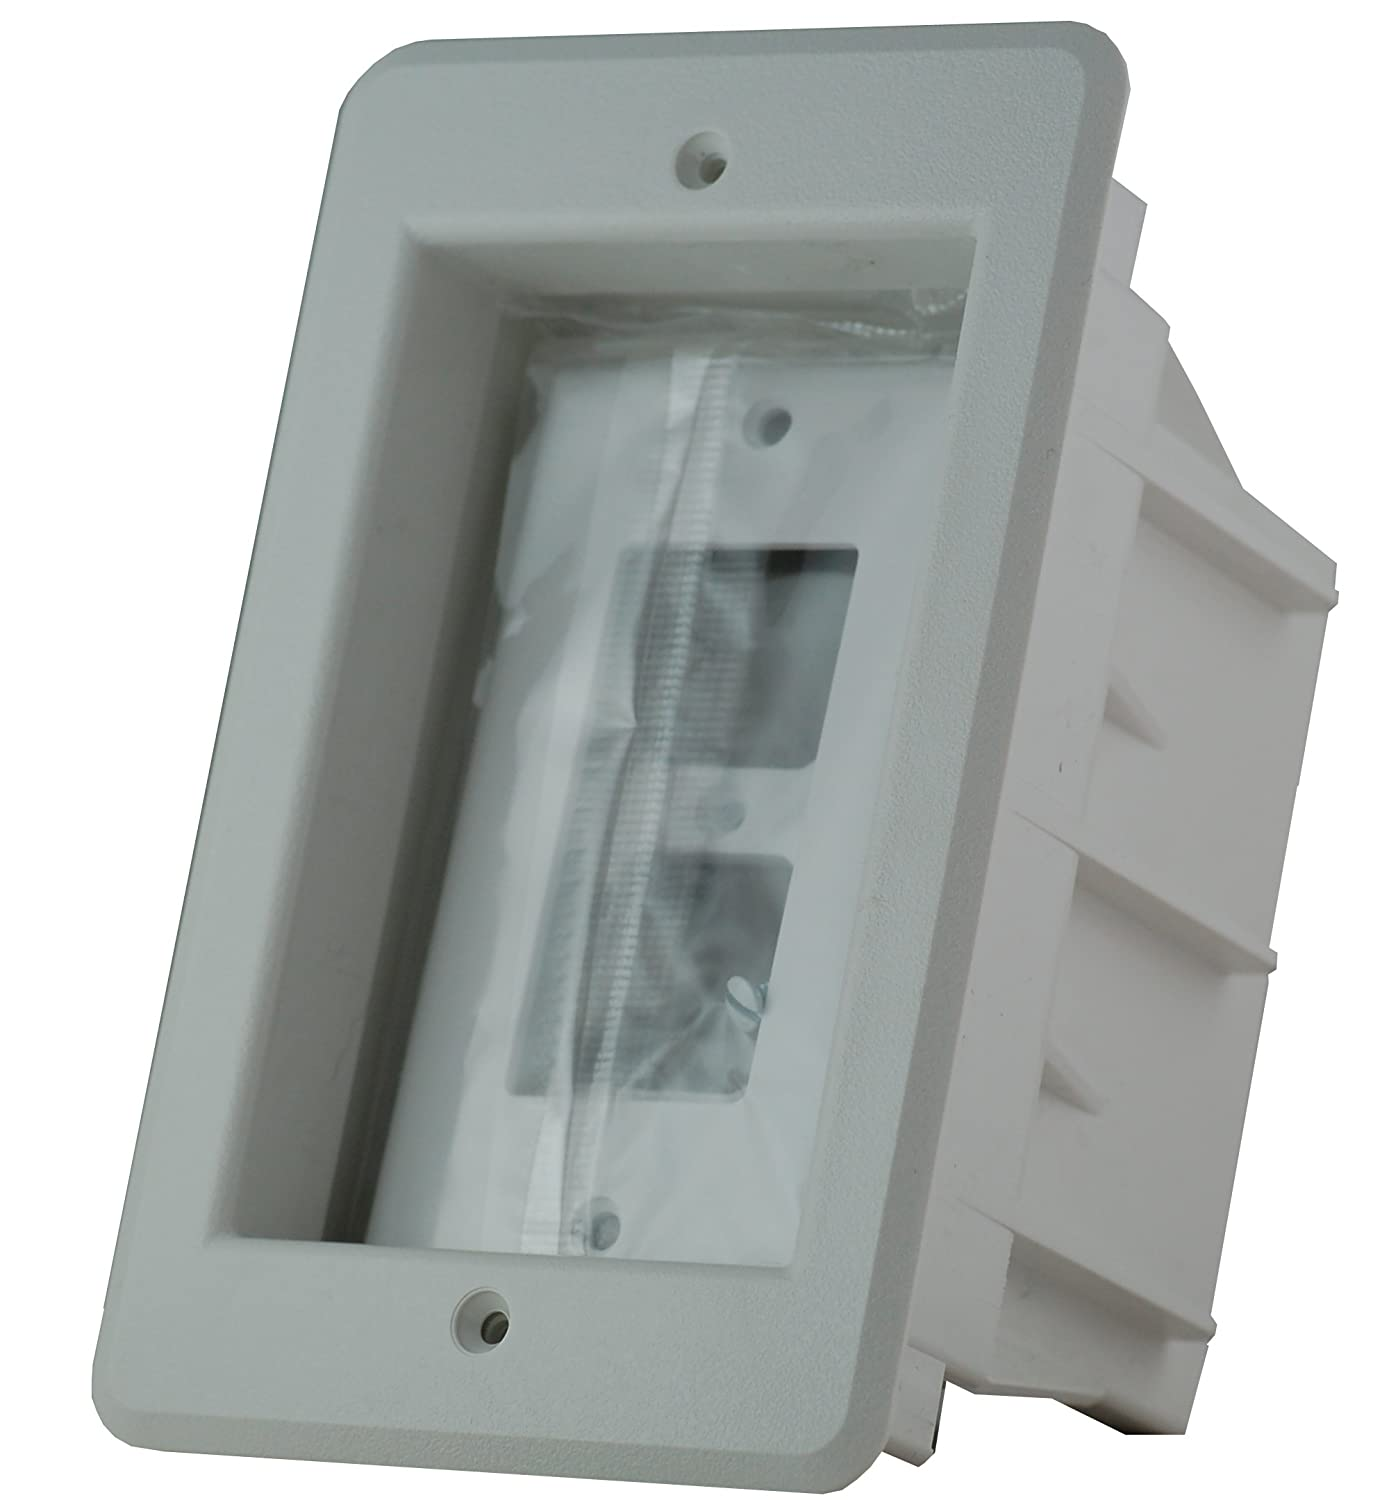 Arlington Dvfr1w 1 Recessed Electrical Outlet Mounting Box Single Usb Charging Whitetr7740wk The Home Depot Gang Drywall Receptacle